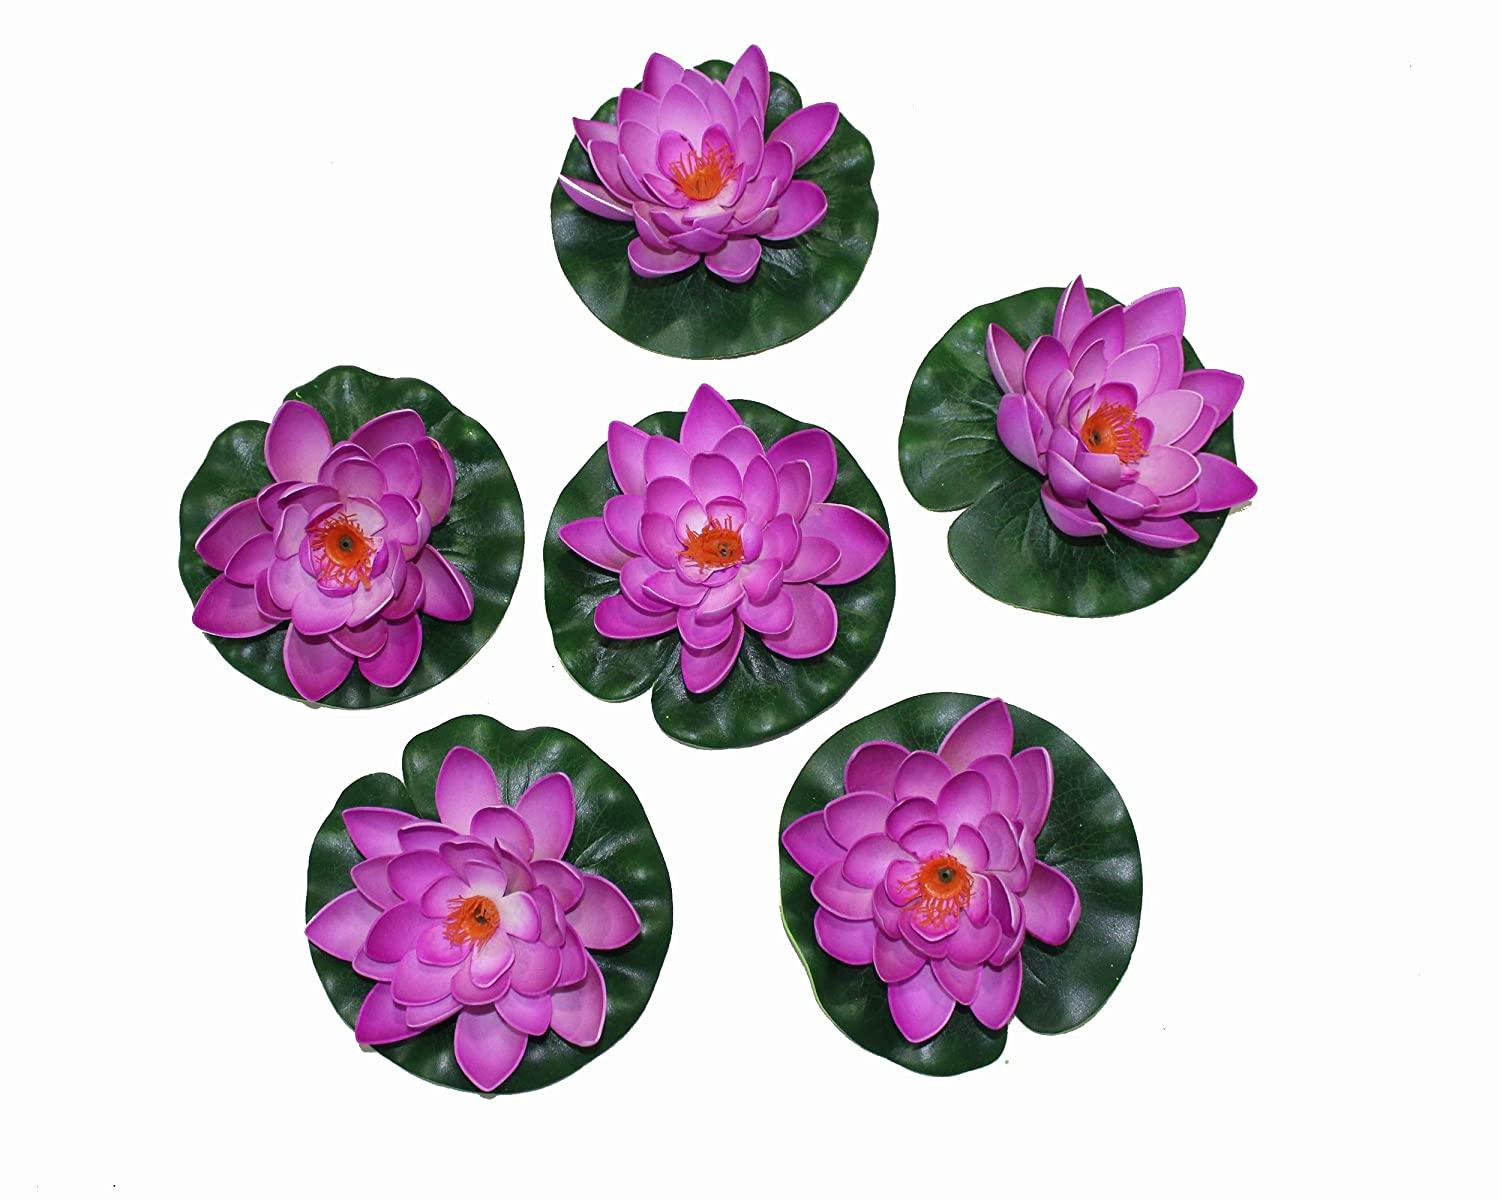 Pollination Blue Artificial Floating Lotus Flower for Decoration (Pack of 6, Diameter: 6 Inch) - Artificial Flowers & Plants - PolliNation